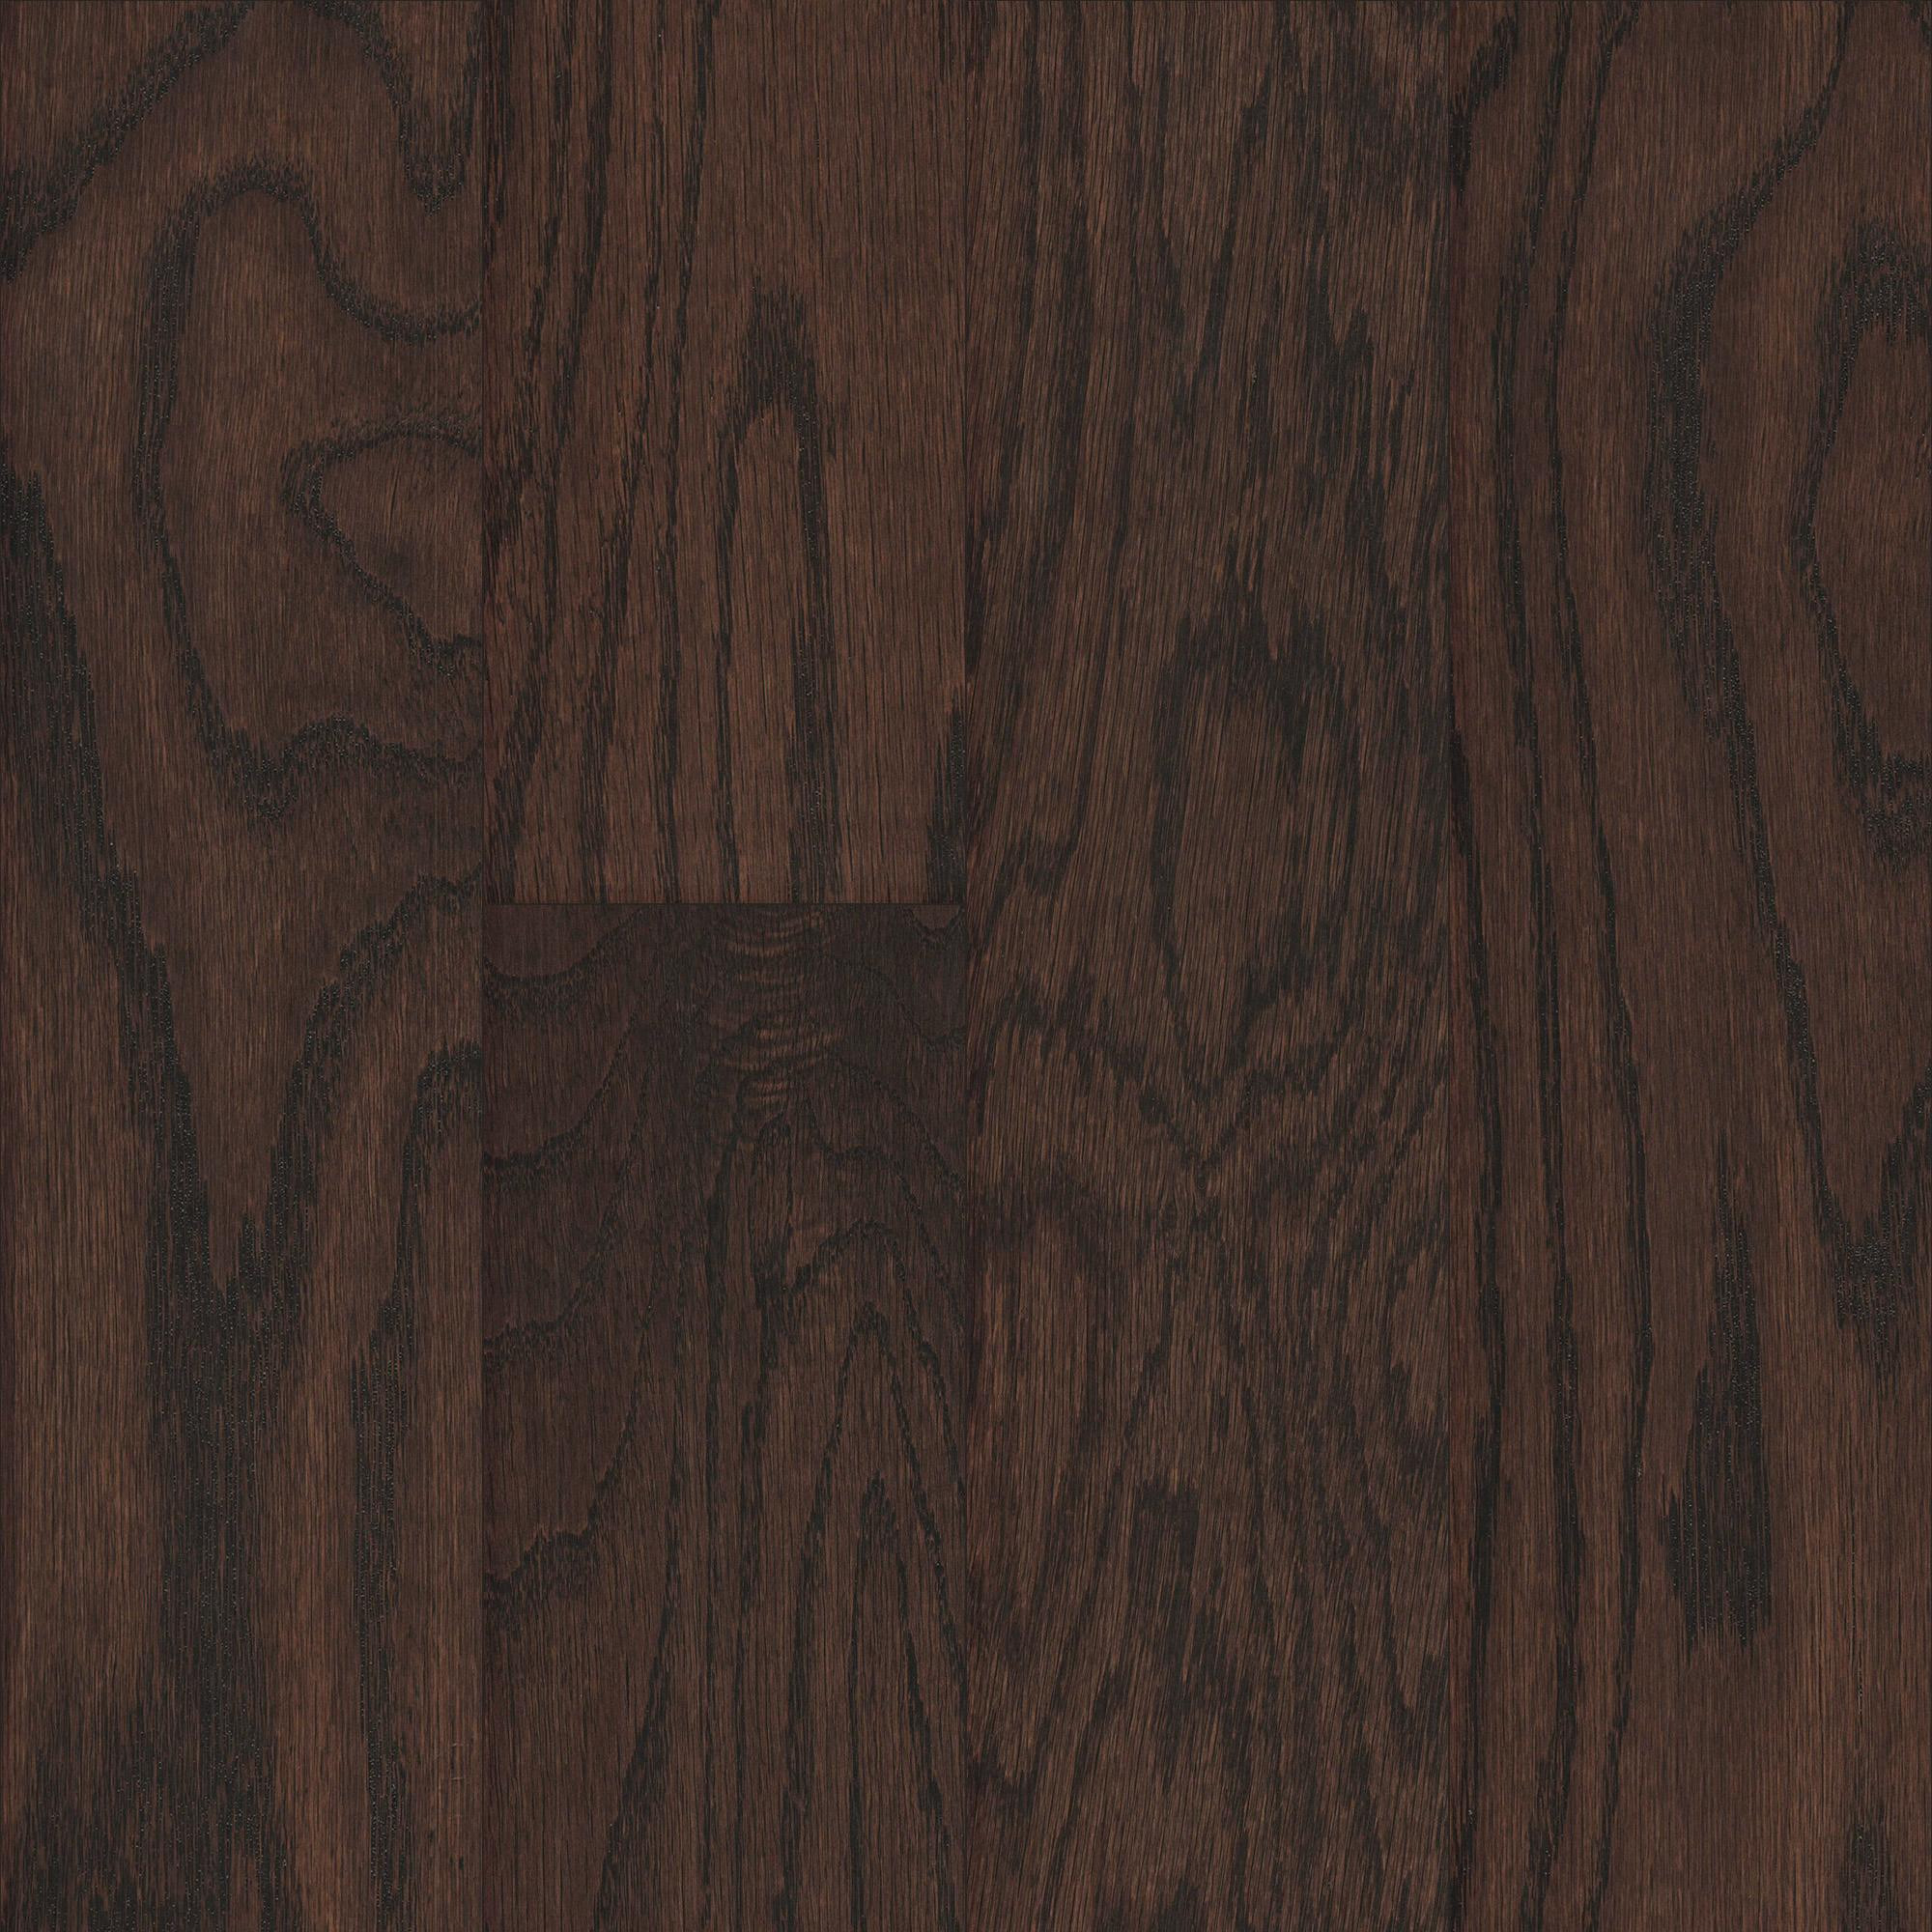 16 Perfect High Quality Engineered Hardwood Flooring 2021 free download high quality engineered hardwood flooring of mullican ridgecrest oak burnt umber 1 2 thick 5 wide engineered pertaining to mullican ridgecrest oak burnt umber 1 2 thick 5 wide engineered har